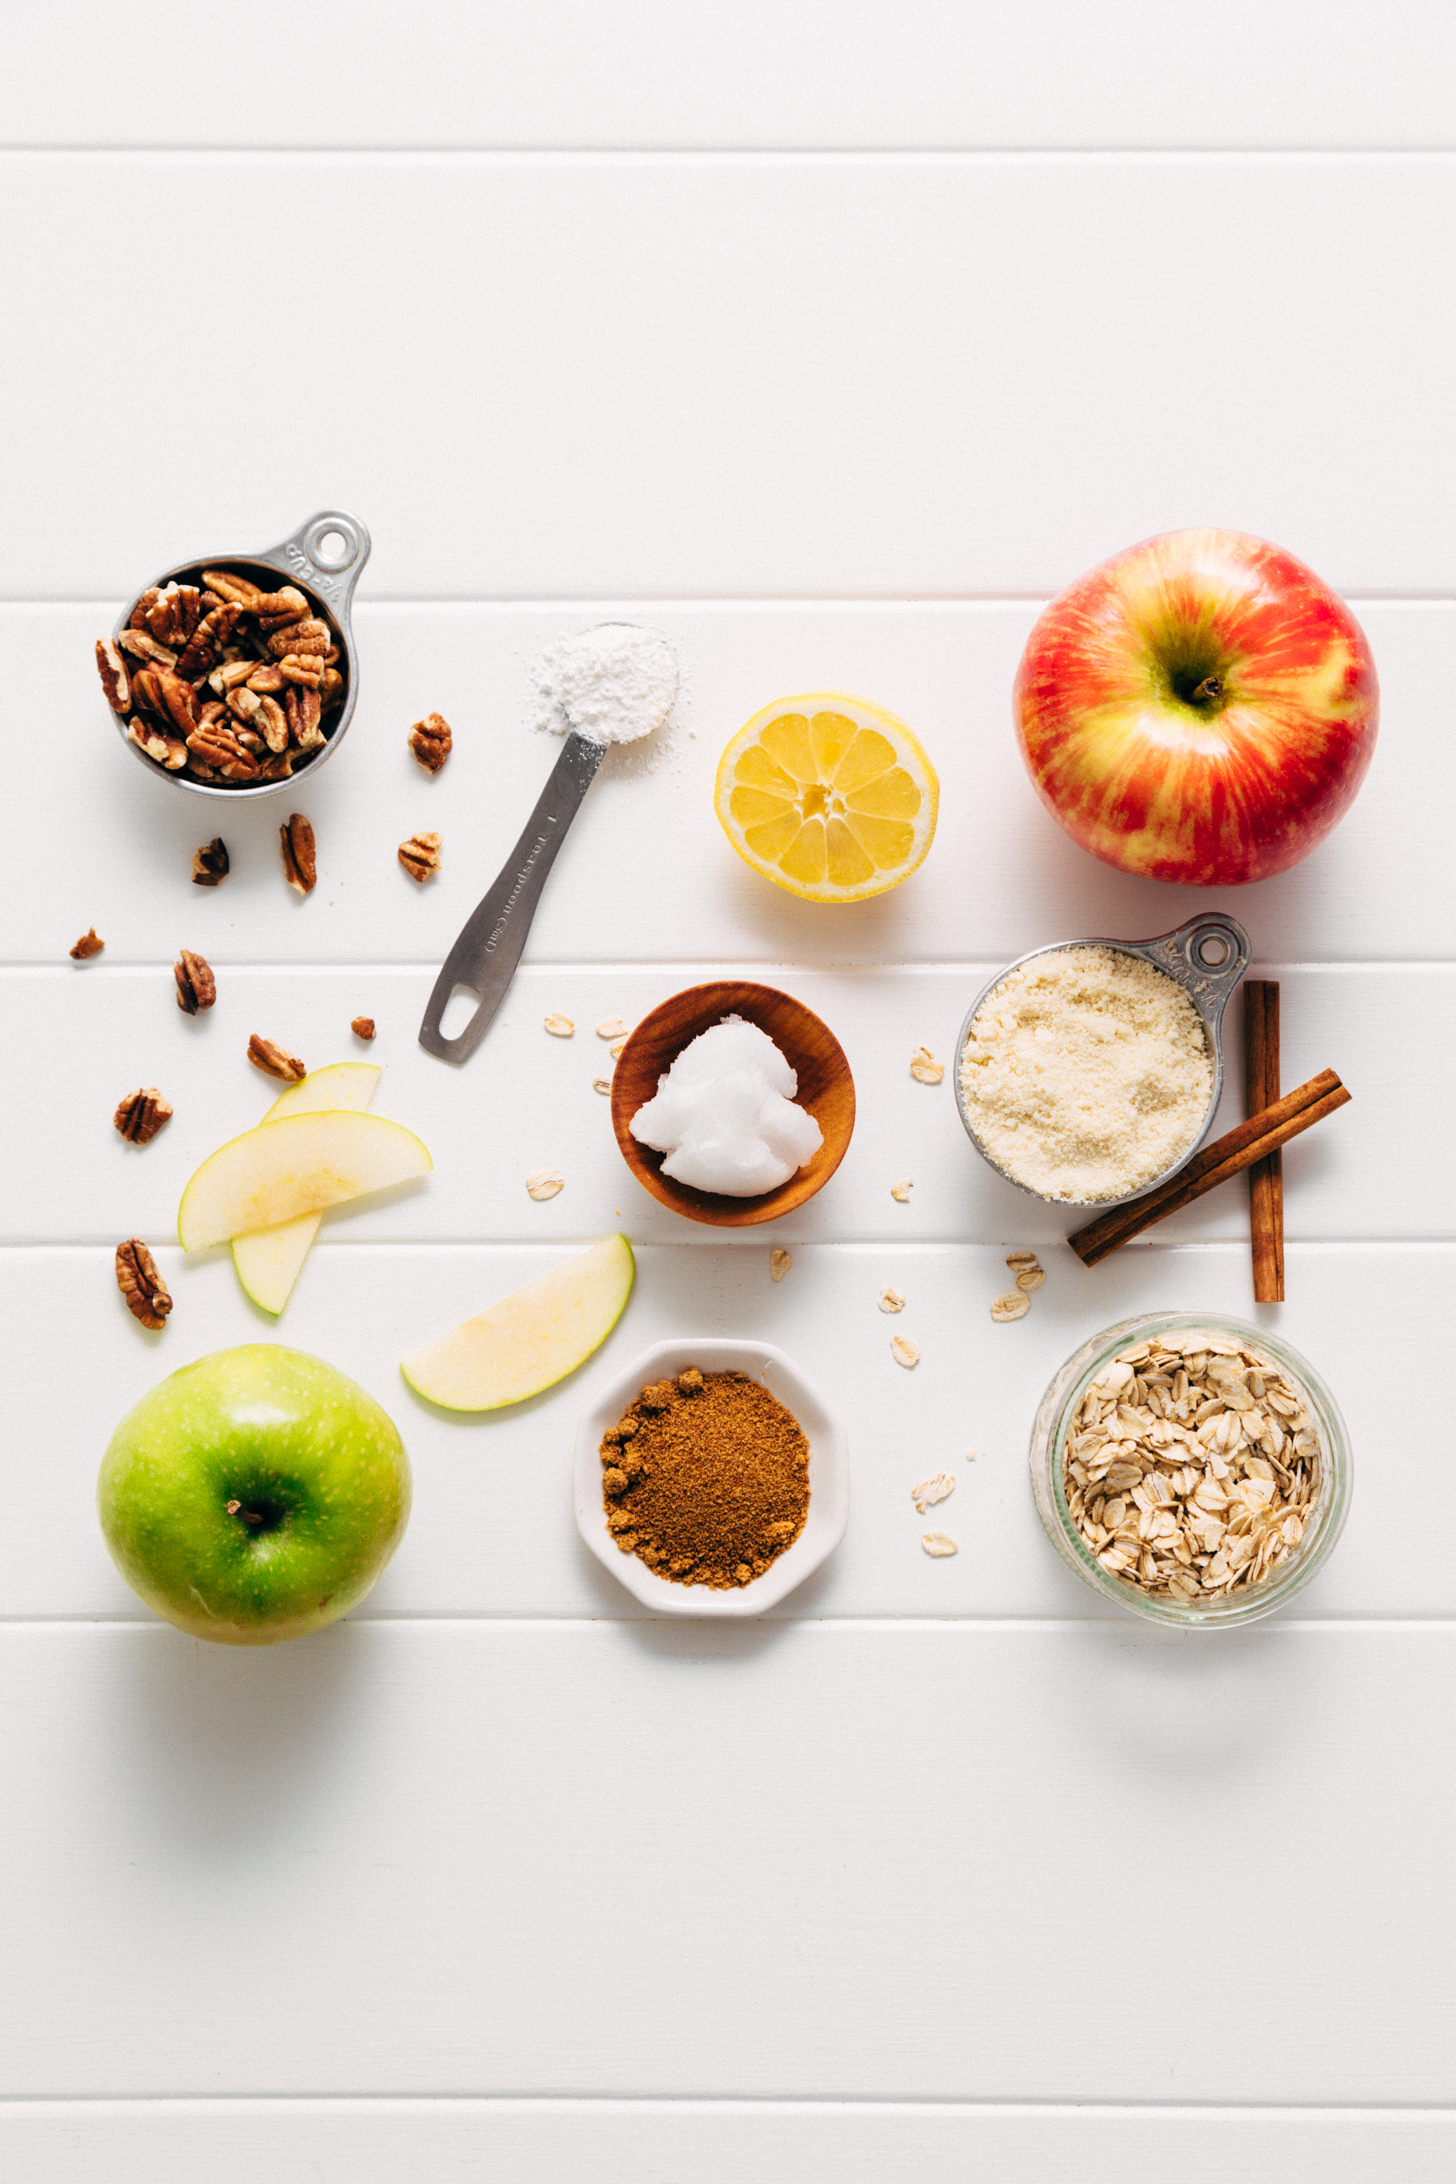 Assortment of ingredients for making our Healthified Apple Crisp recipe with almond meal, oats, and pecans